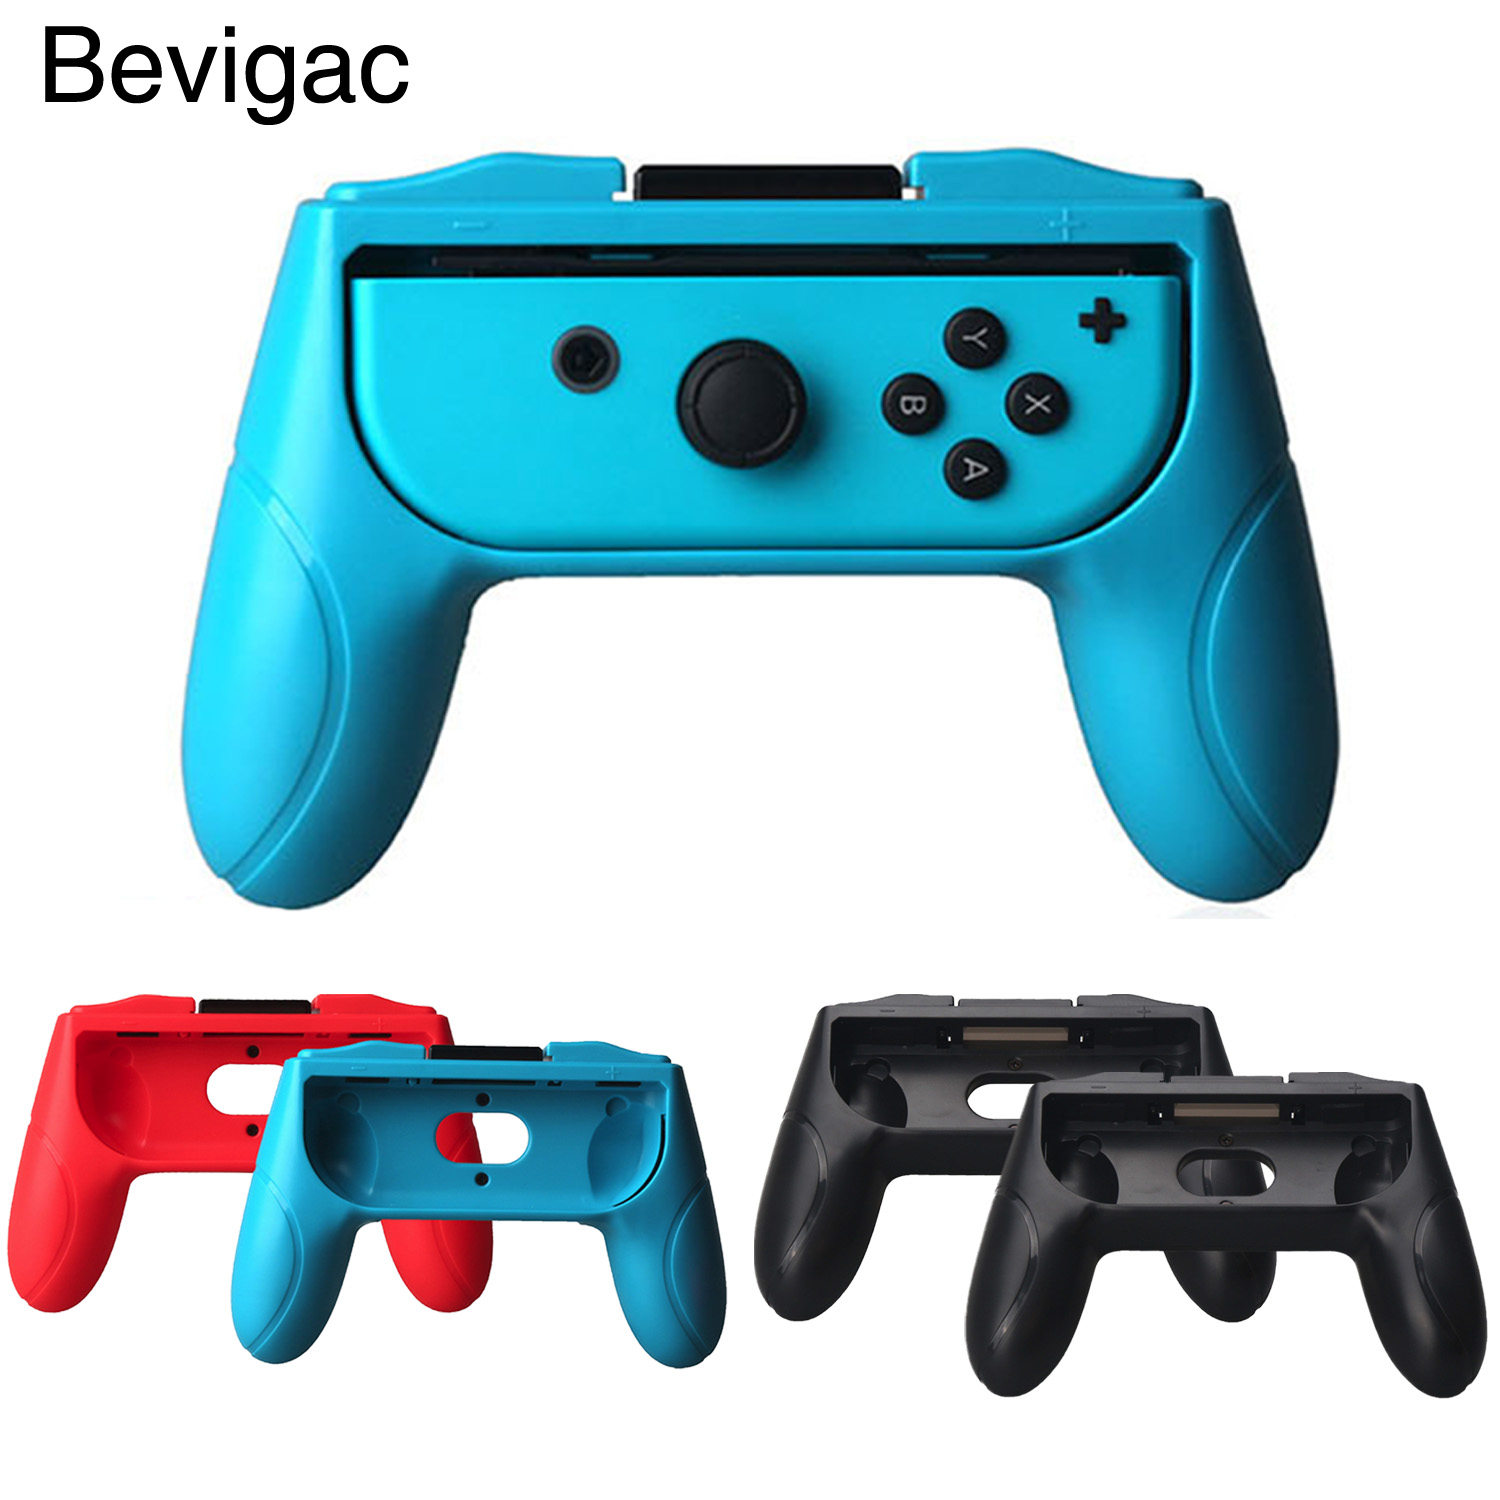 Bevigac 1 Pair Abrasion Resistance Controller Grips Handles for Nintendo Nintend Nitendo Switch Joy-Con Console Game Accessories